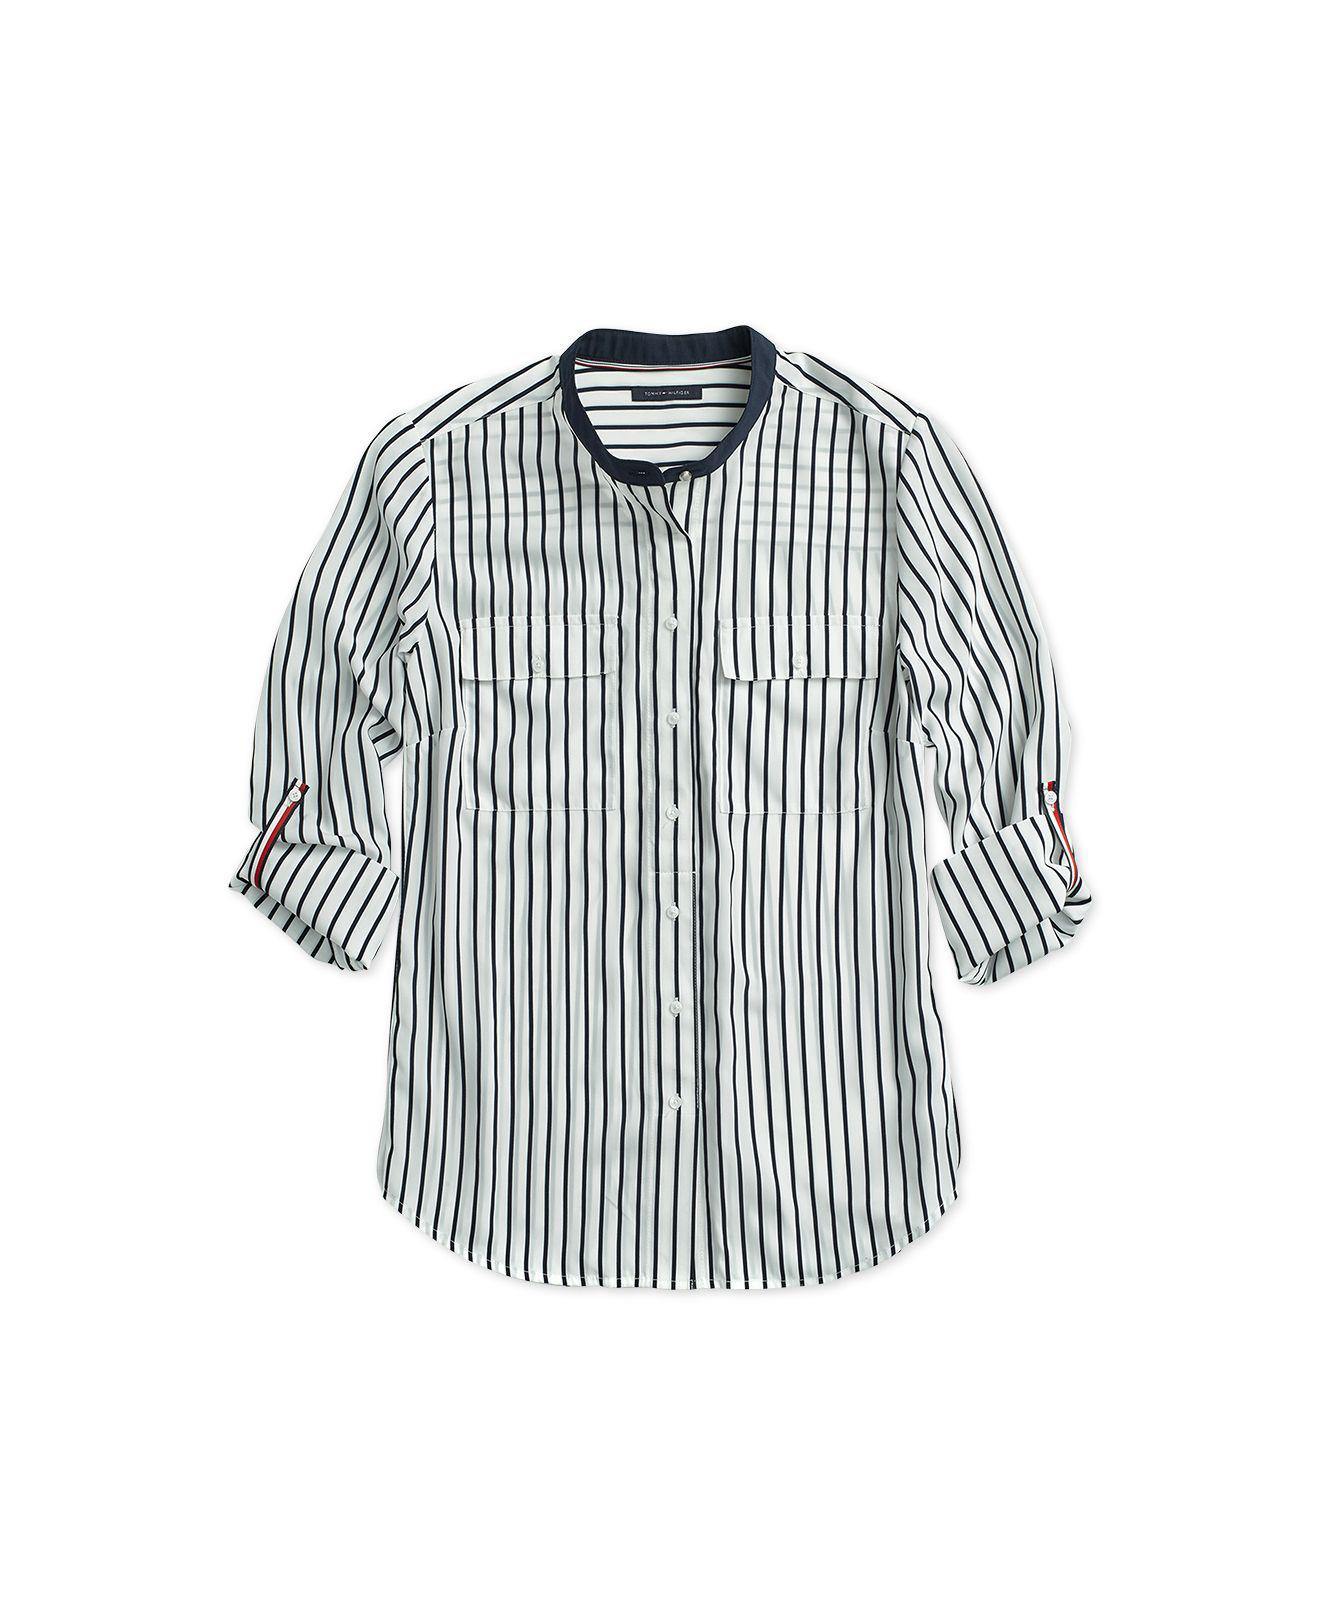 7676ba0372bc7e Lyst - Tommy Hilfiger Striped Fridae Top